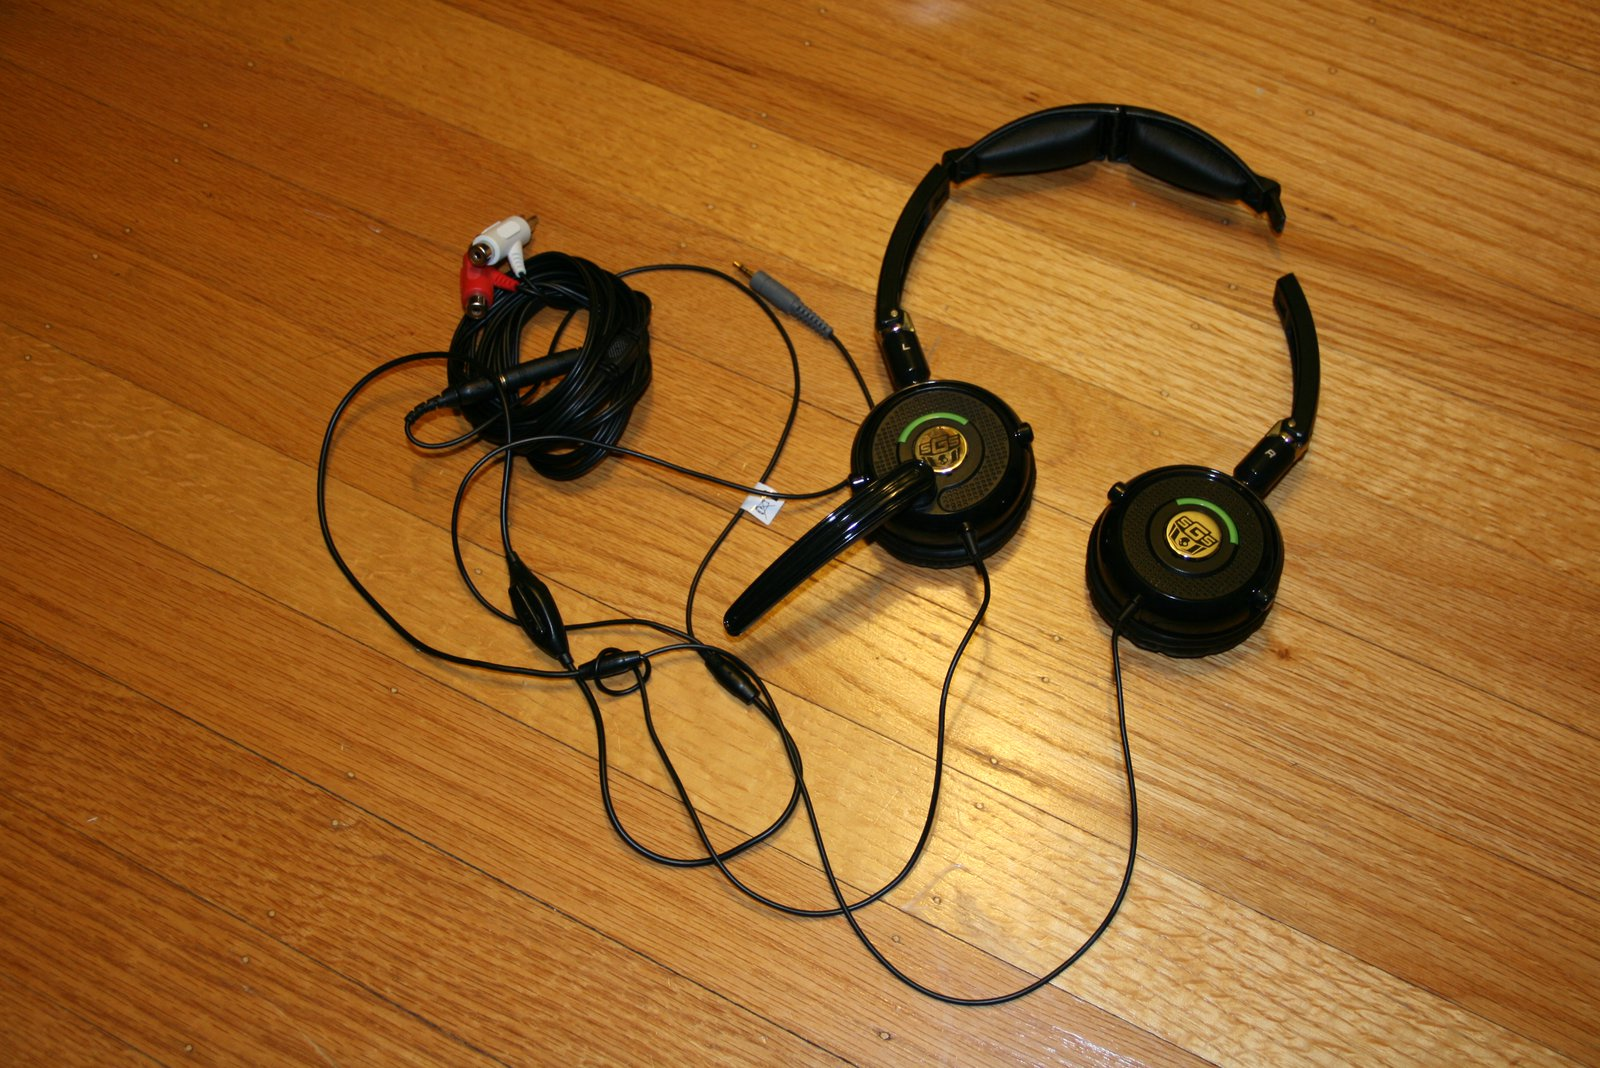 Xbox headphones